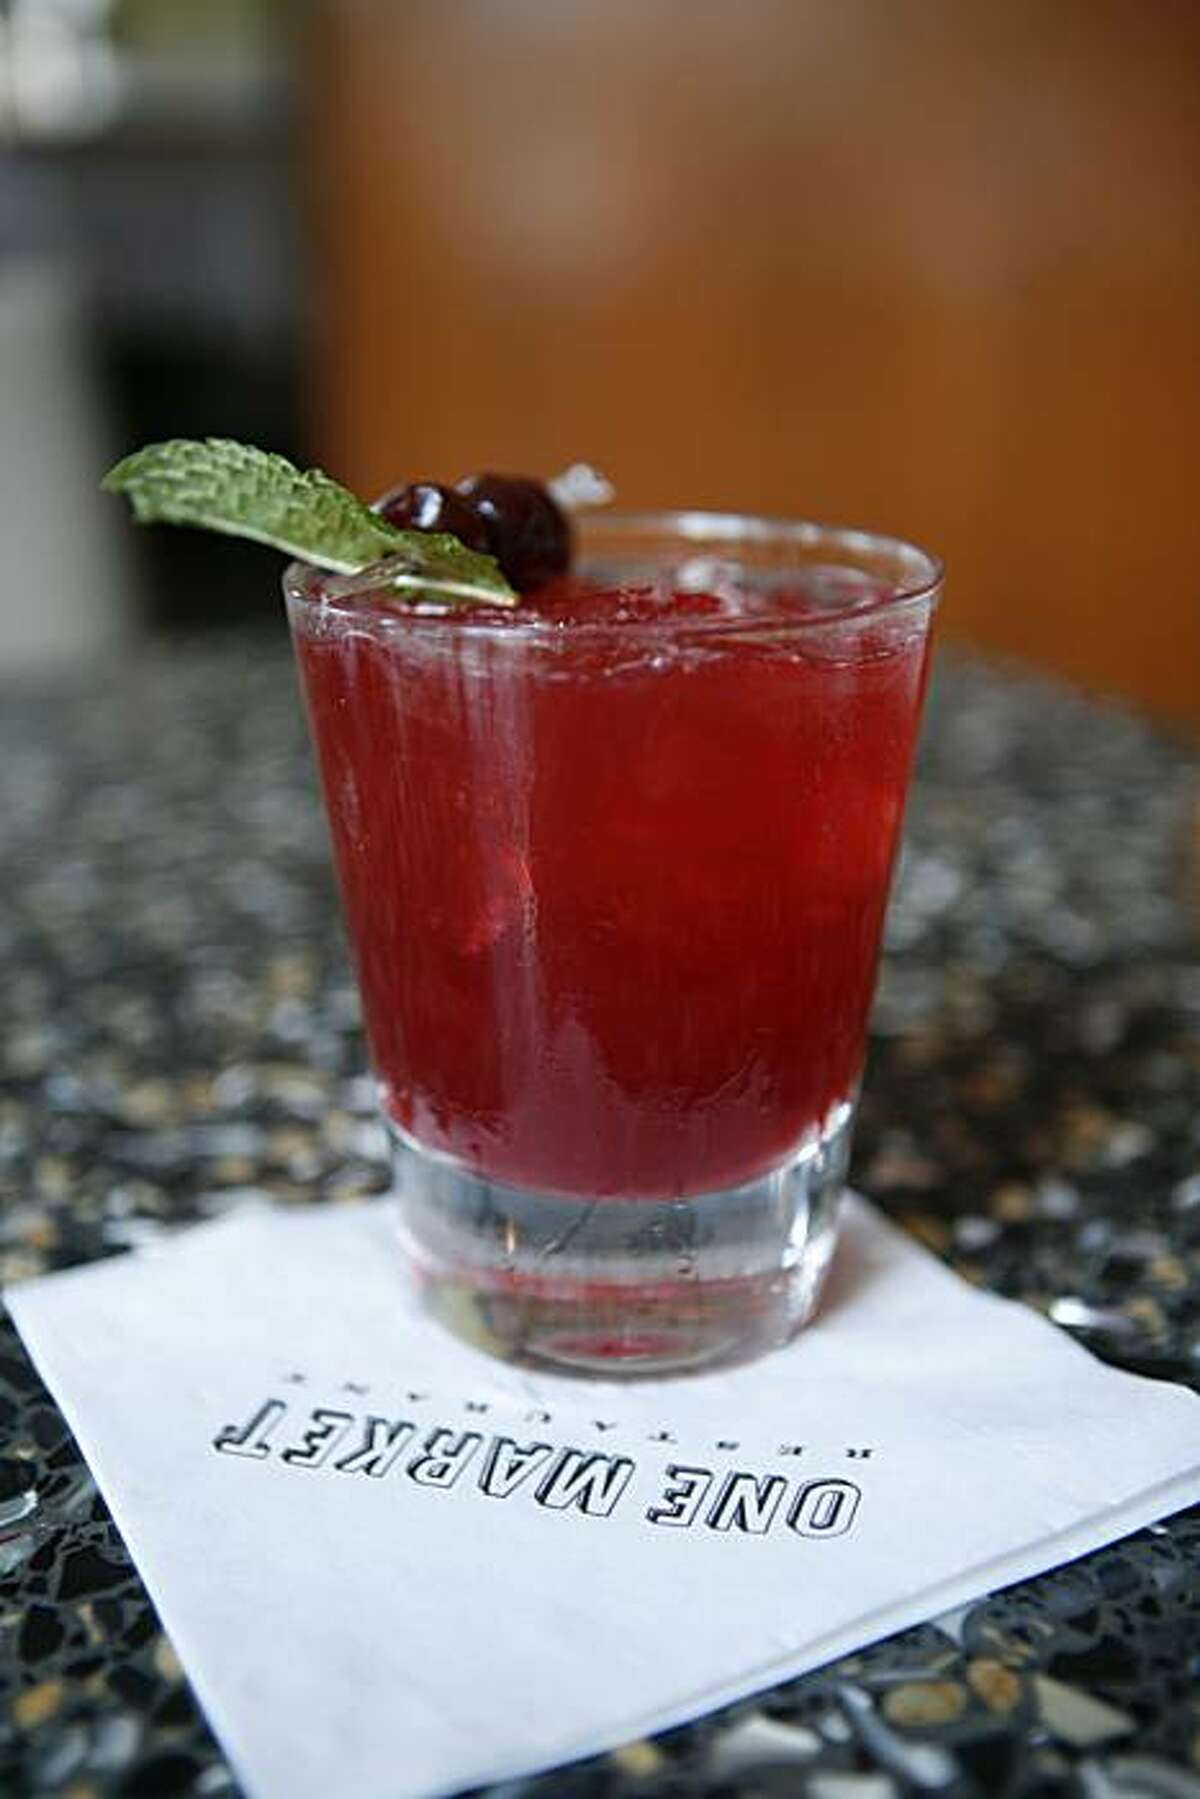 The Last Embrace drink is seen at the One Market bar and restaurant in San Francisco, Calif. on Thursday August 19, 2010.